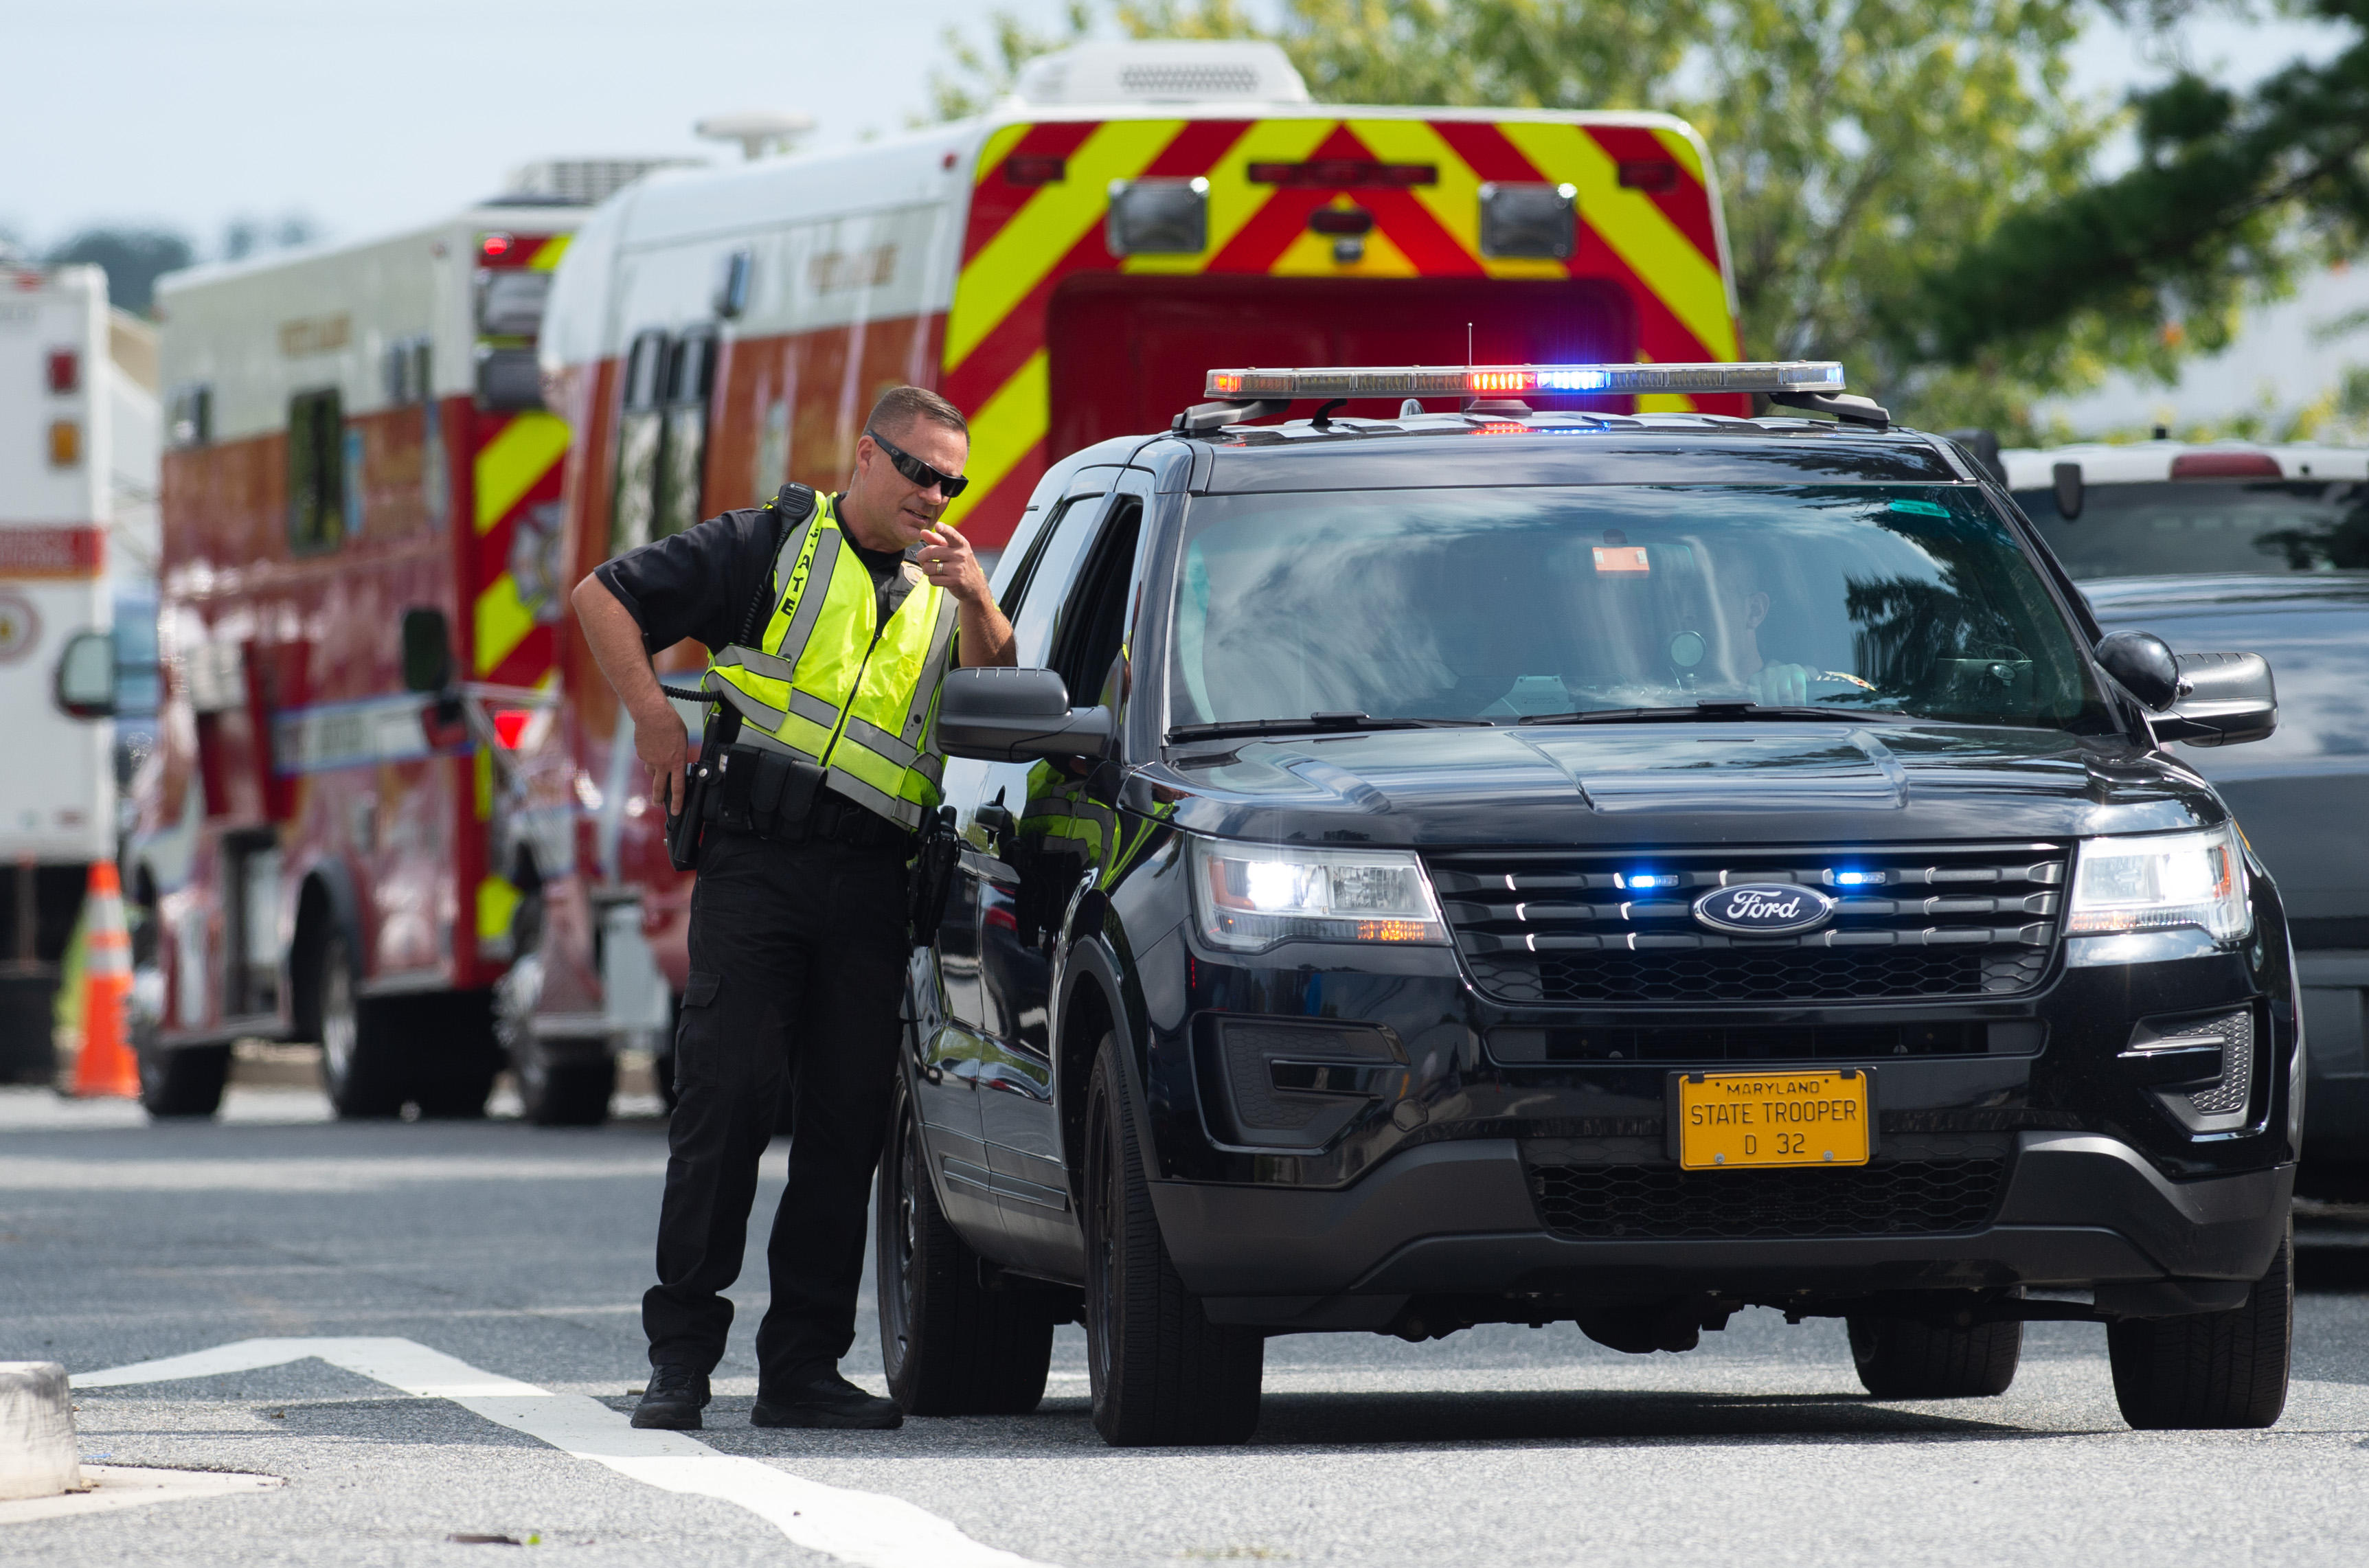 Maryland shooting today: Suspect dead, ID'd as temporary